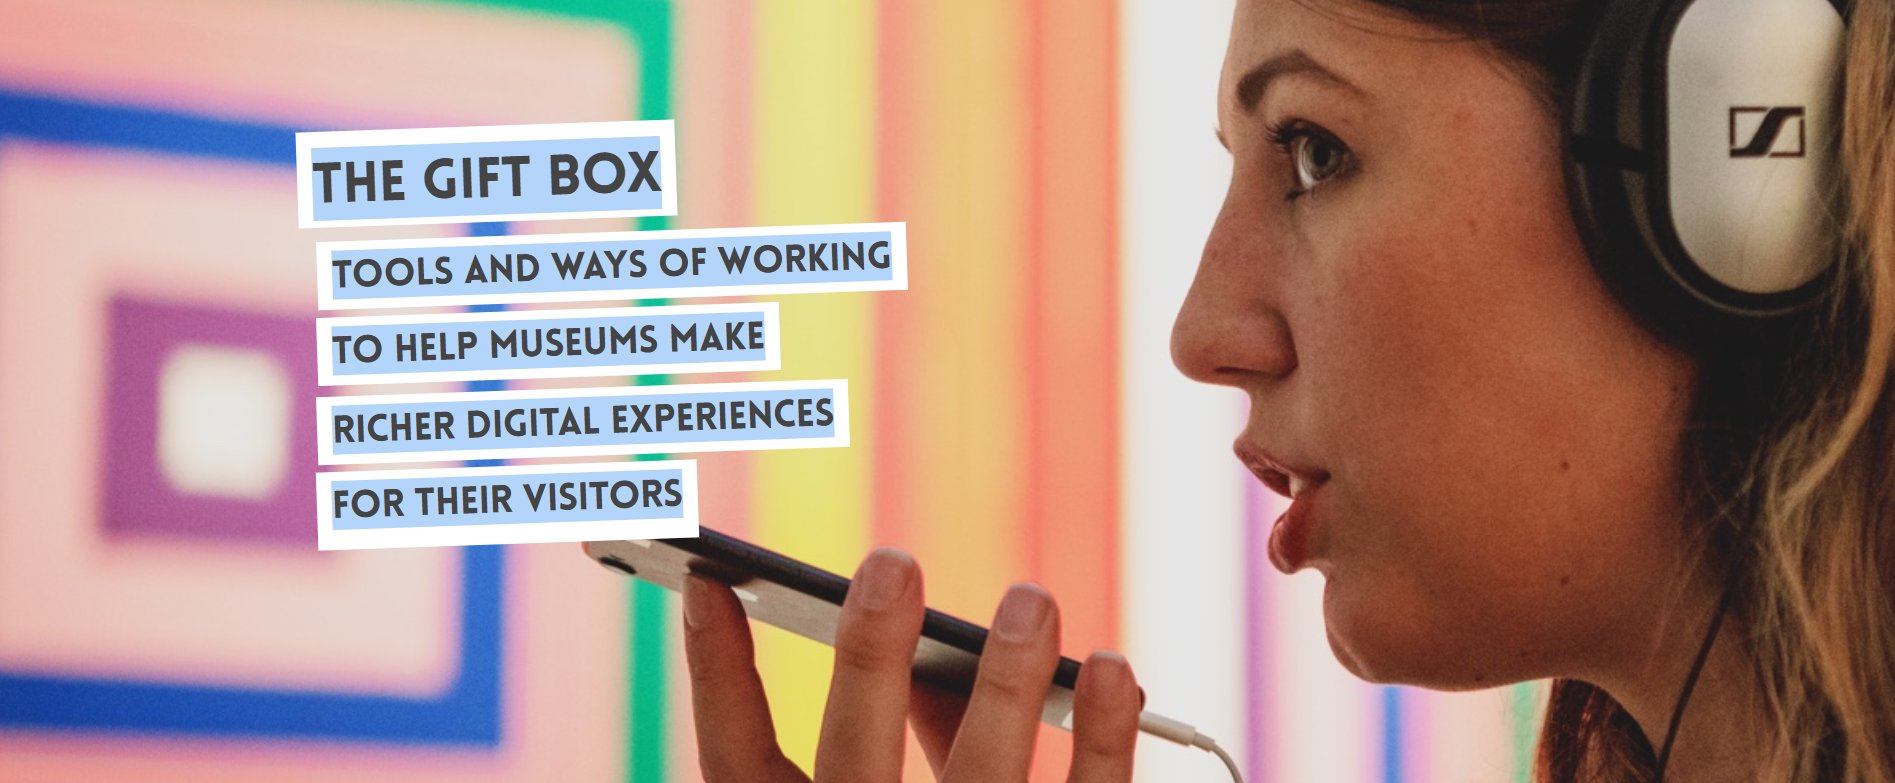 The GIFT Box: tools and ways of working to help museums make richer digital experiences for their visitors